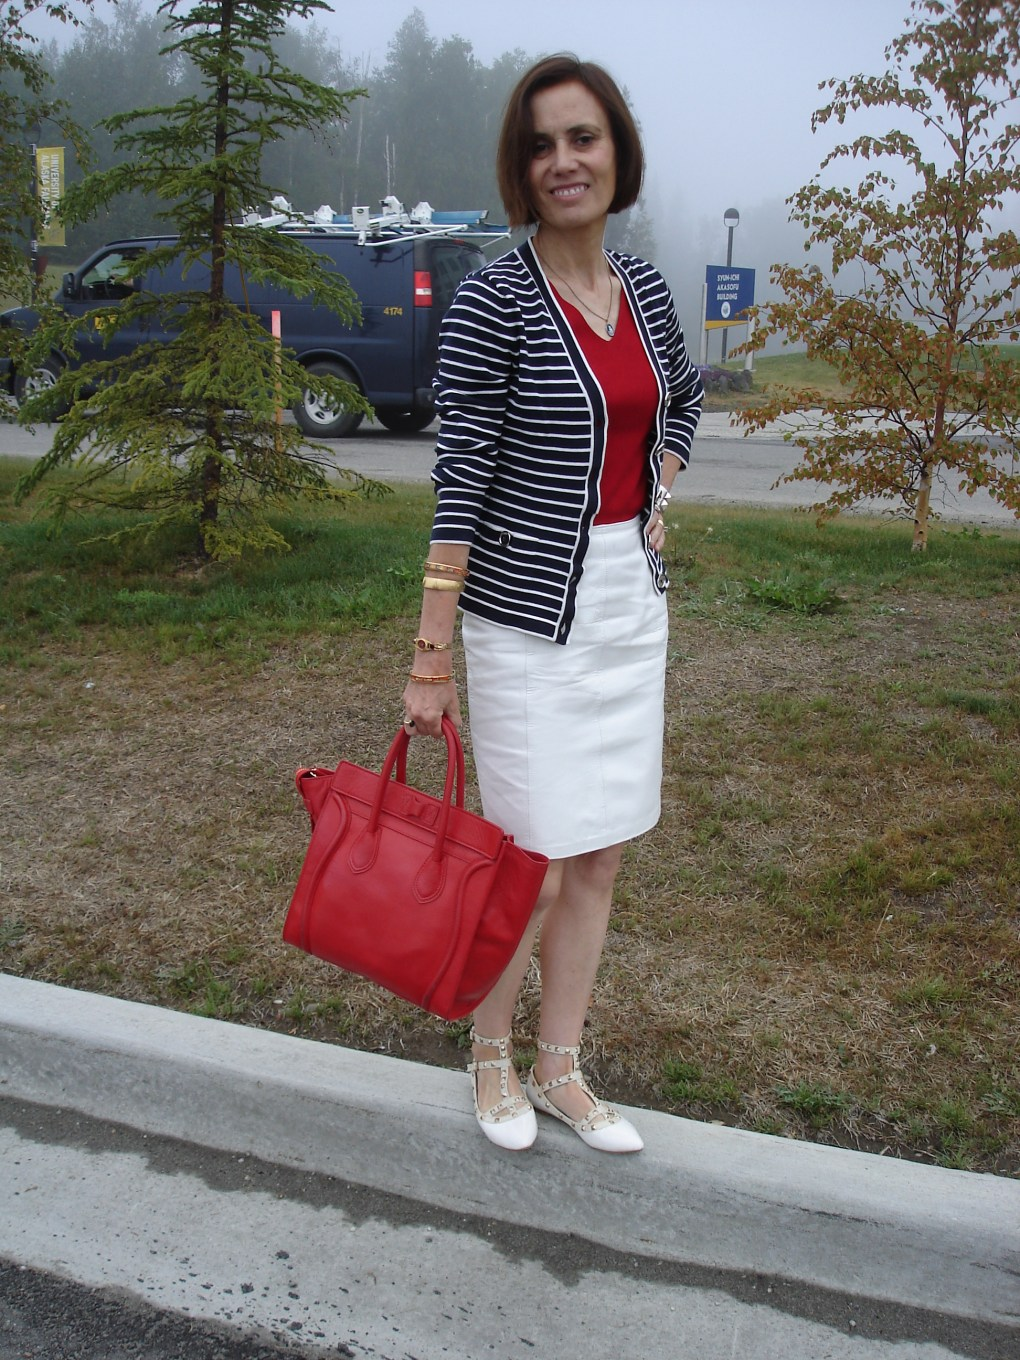 midlife fashion woman in casual outfit